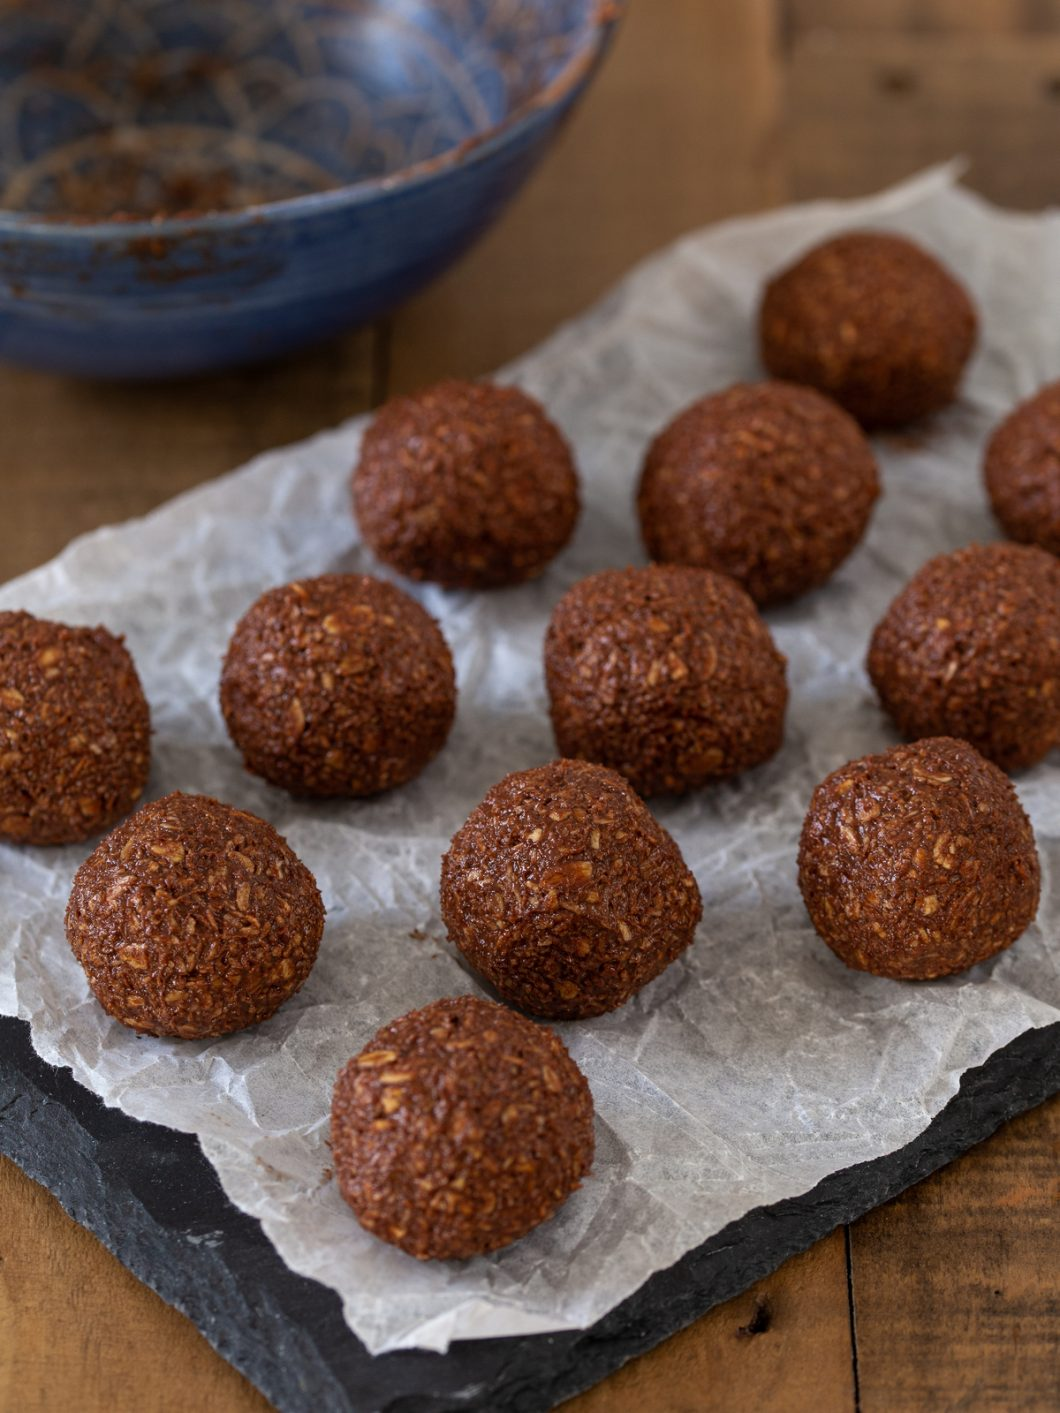 Chocolate oat balls with no coating.